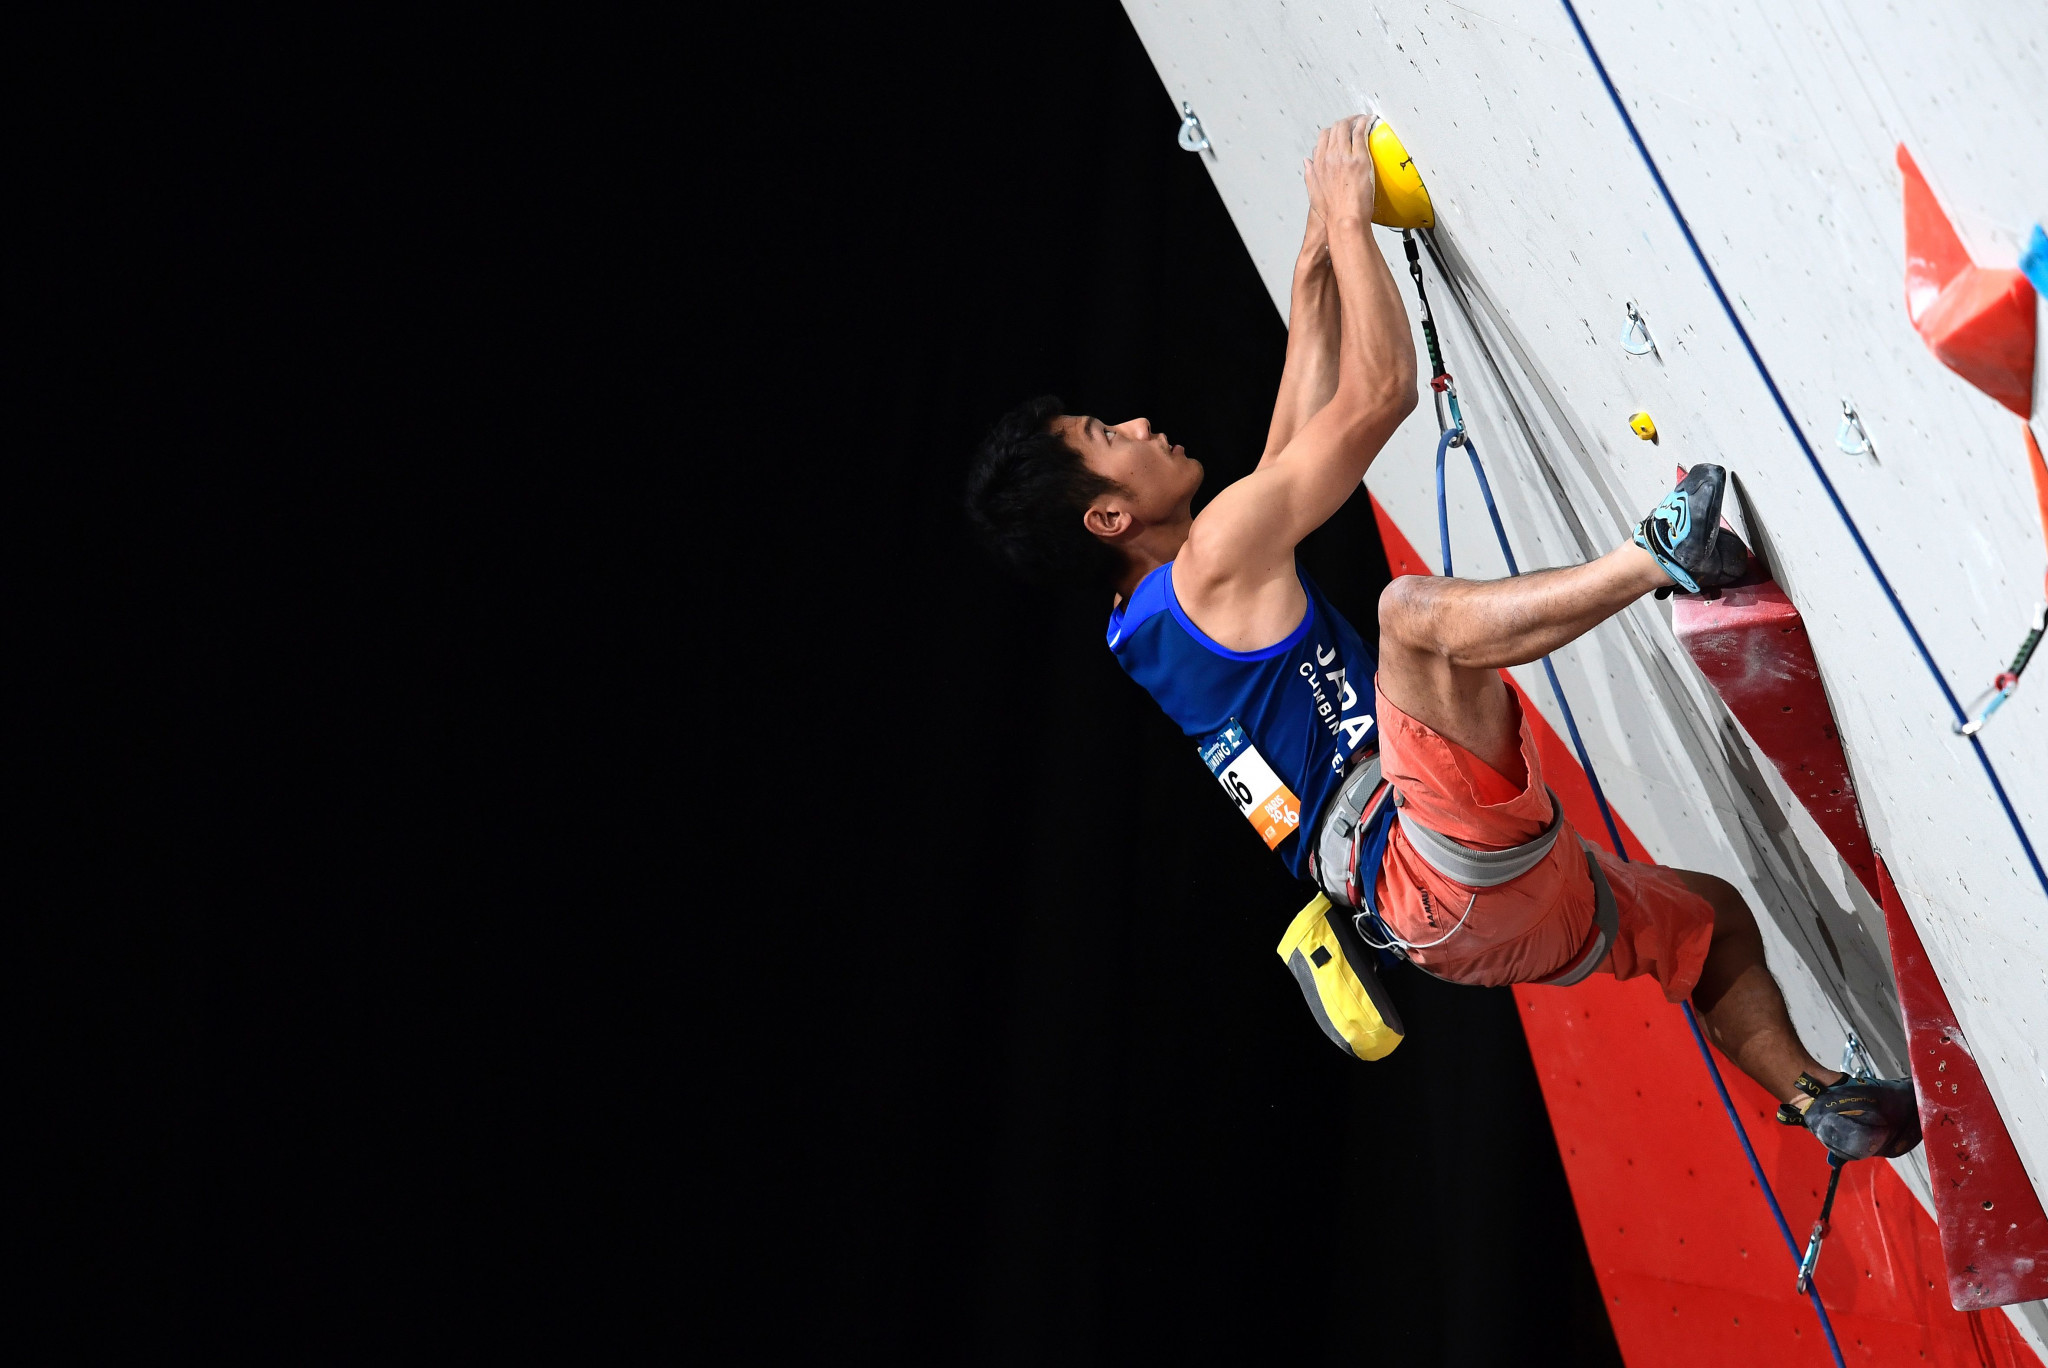 Masahiro Higuchi of Japan won the men's semi-final of the men's lead event at the IFSC Asian Championships ©Getty Images